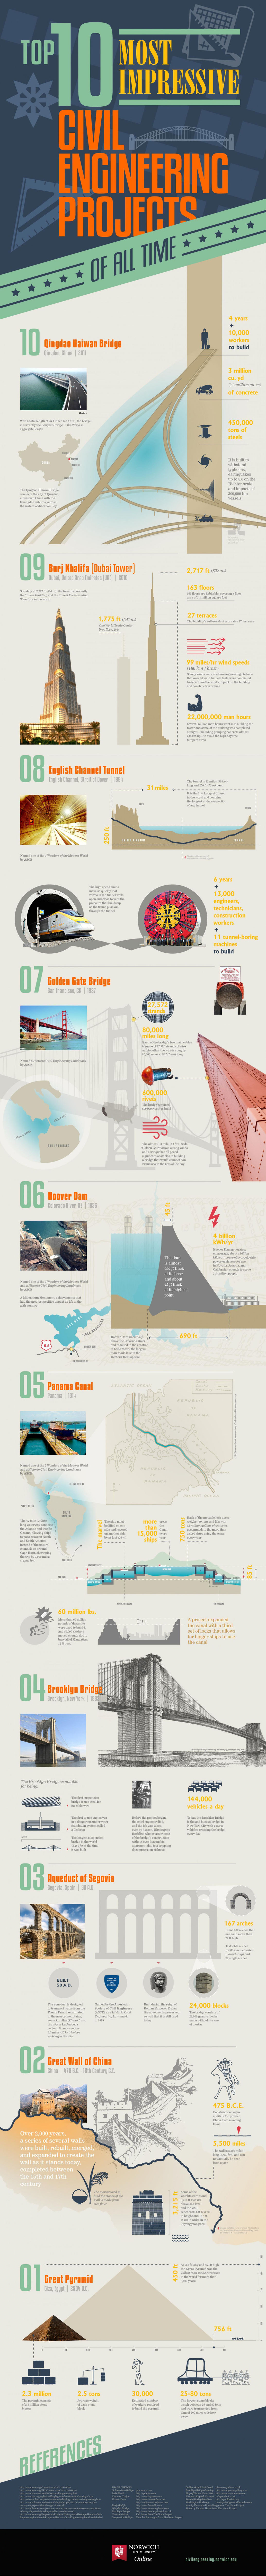 The 10 Most Impressive Civil Engineering Projects of All Time